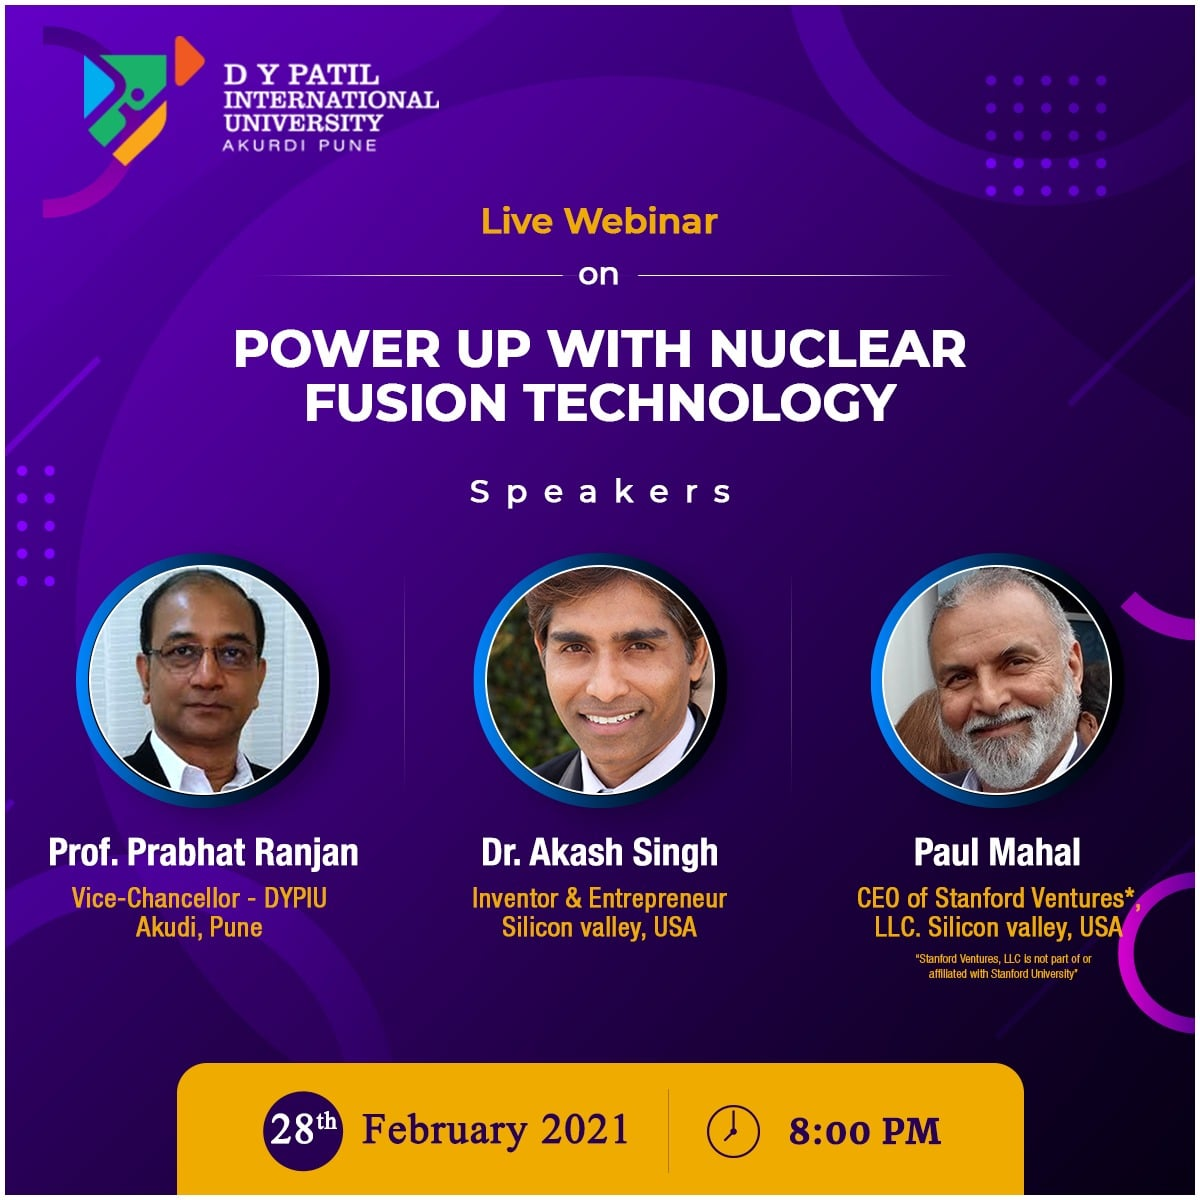 DYPIU : National Science Day discussion on Nuclear Fusion